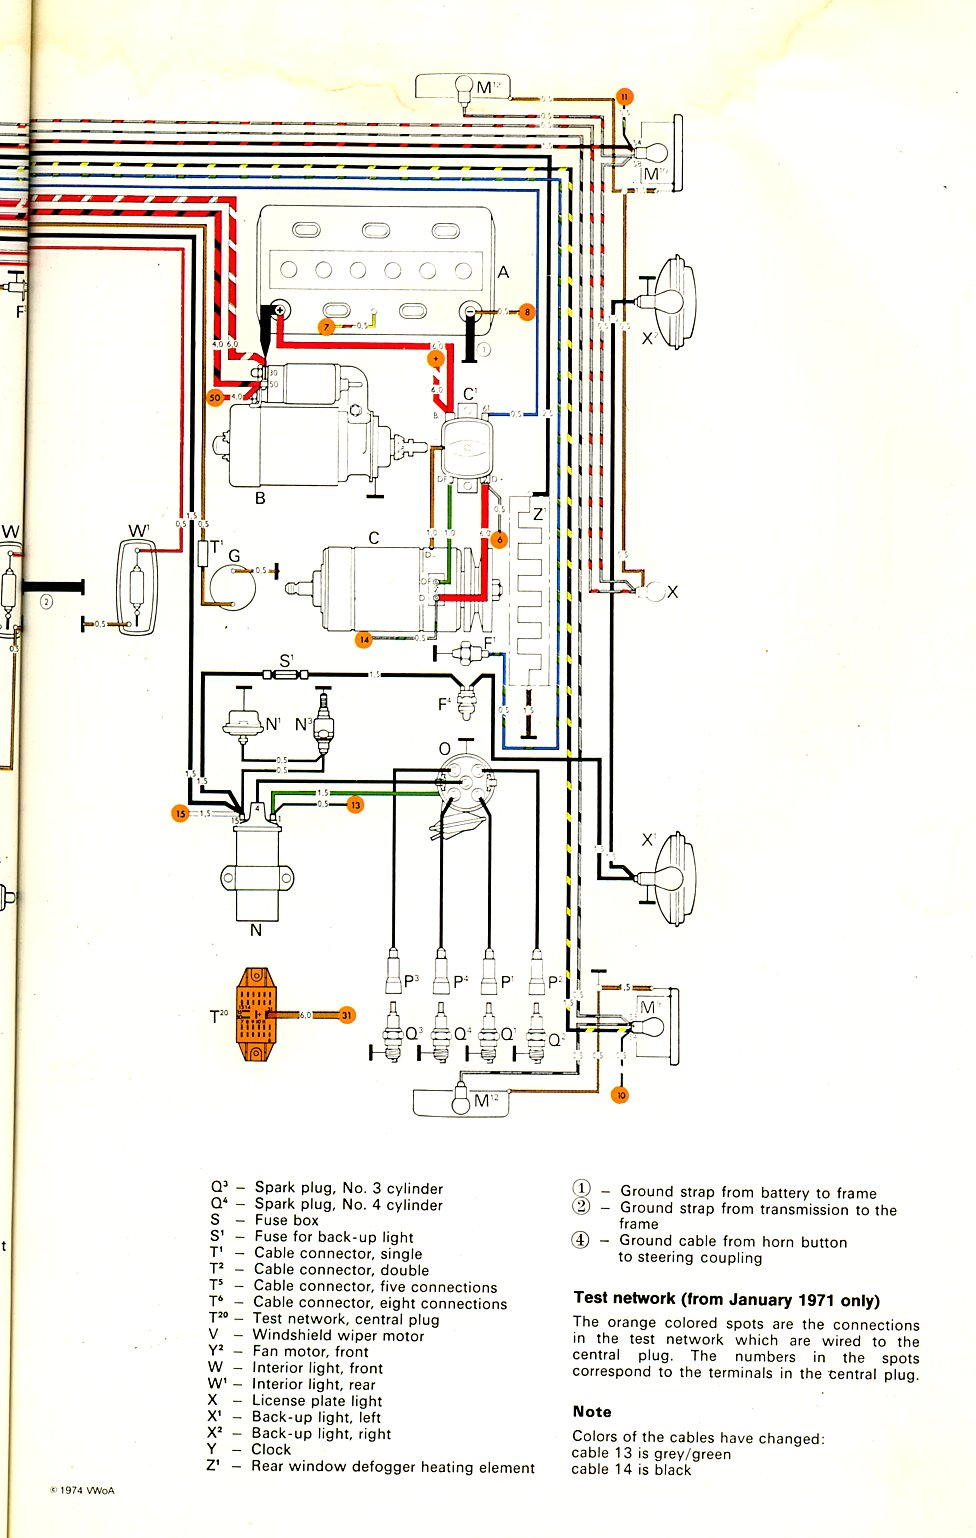 fuse diagram for 1973 vw super beetle wiring diagram for 1974 vw super beetle